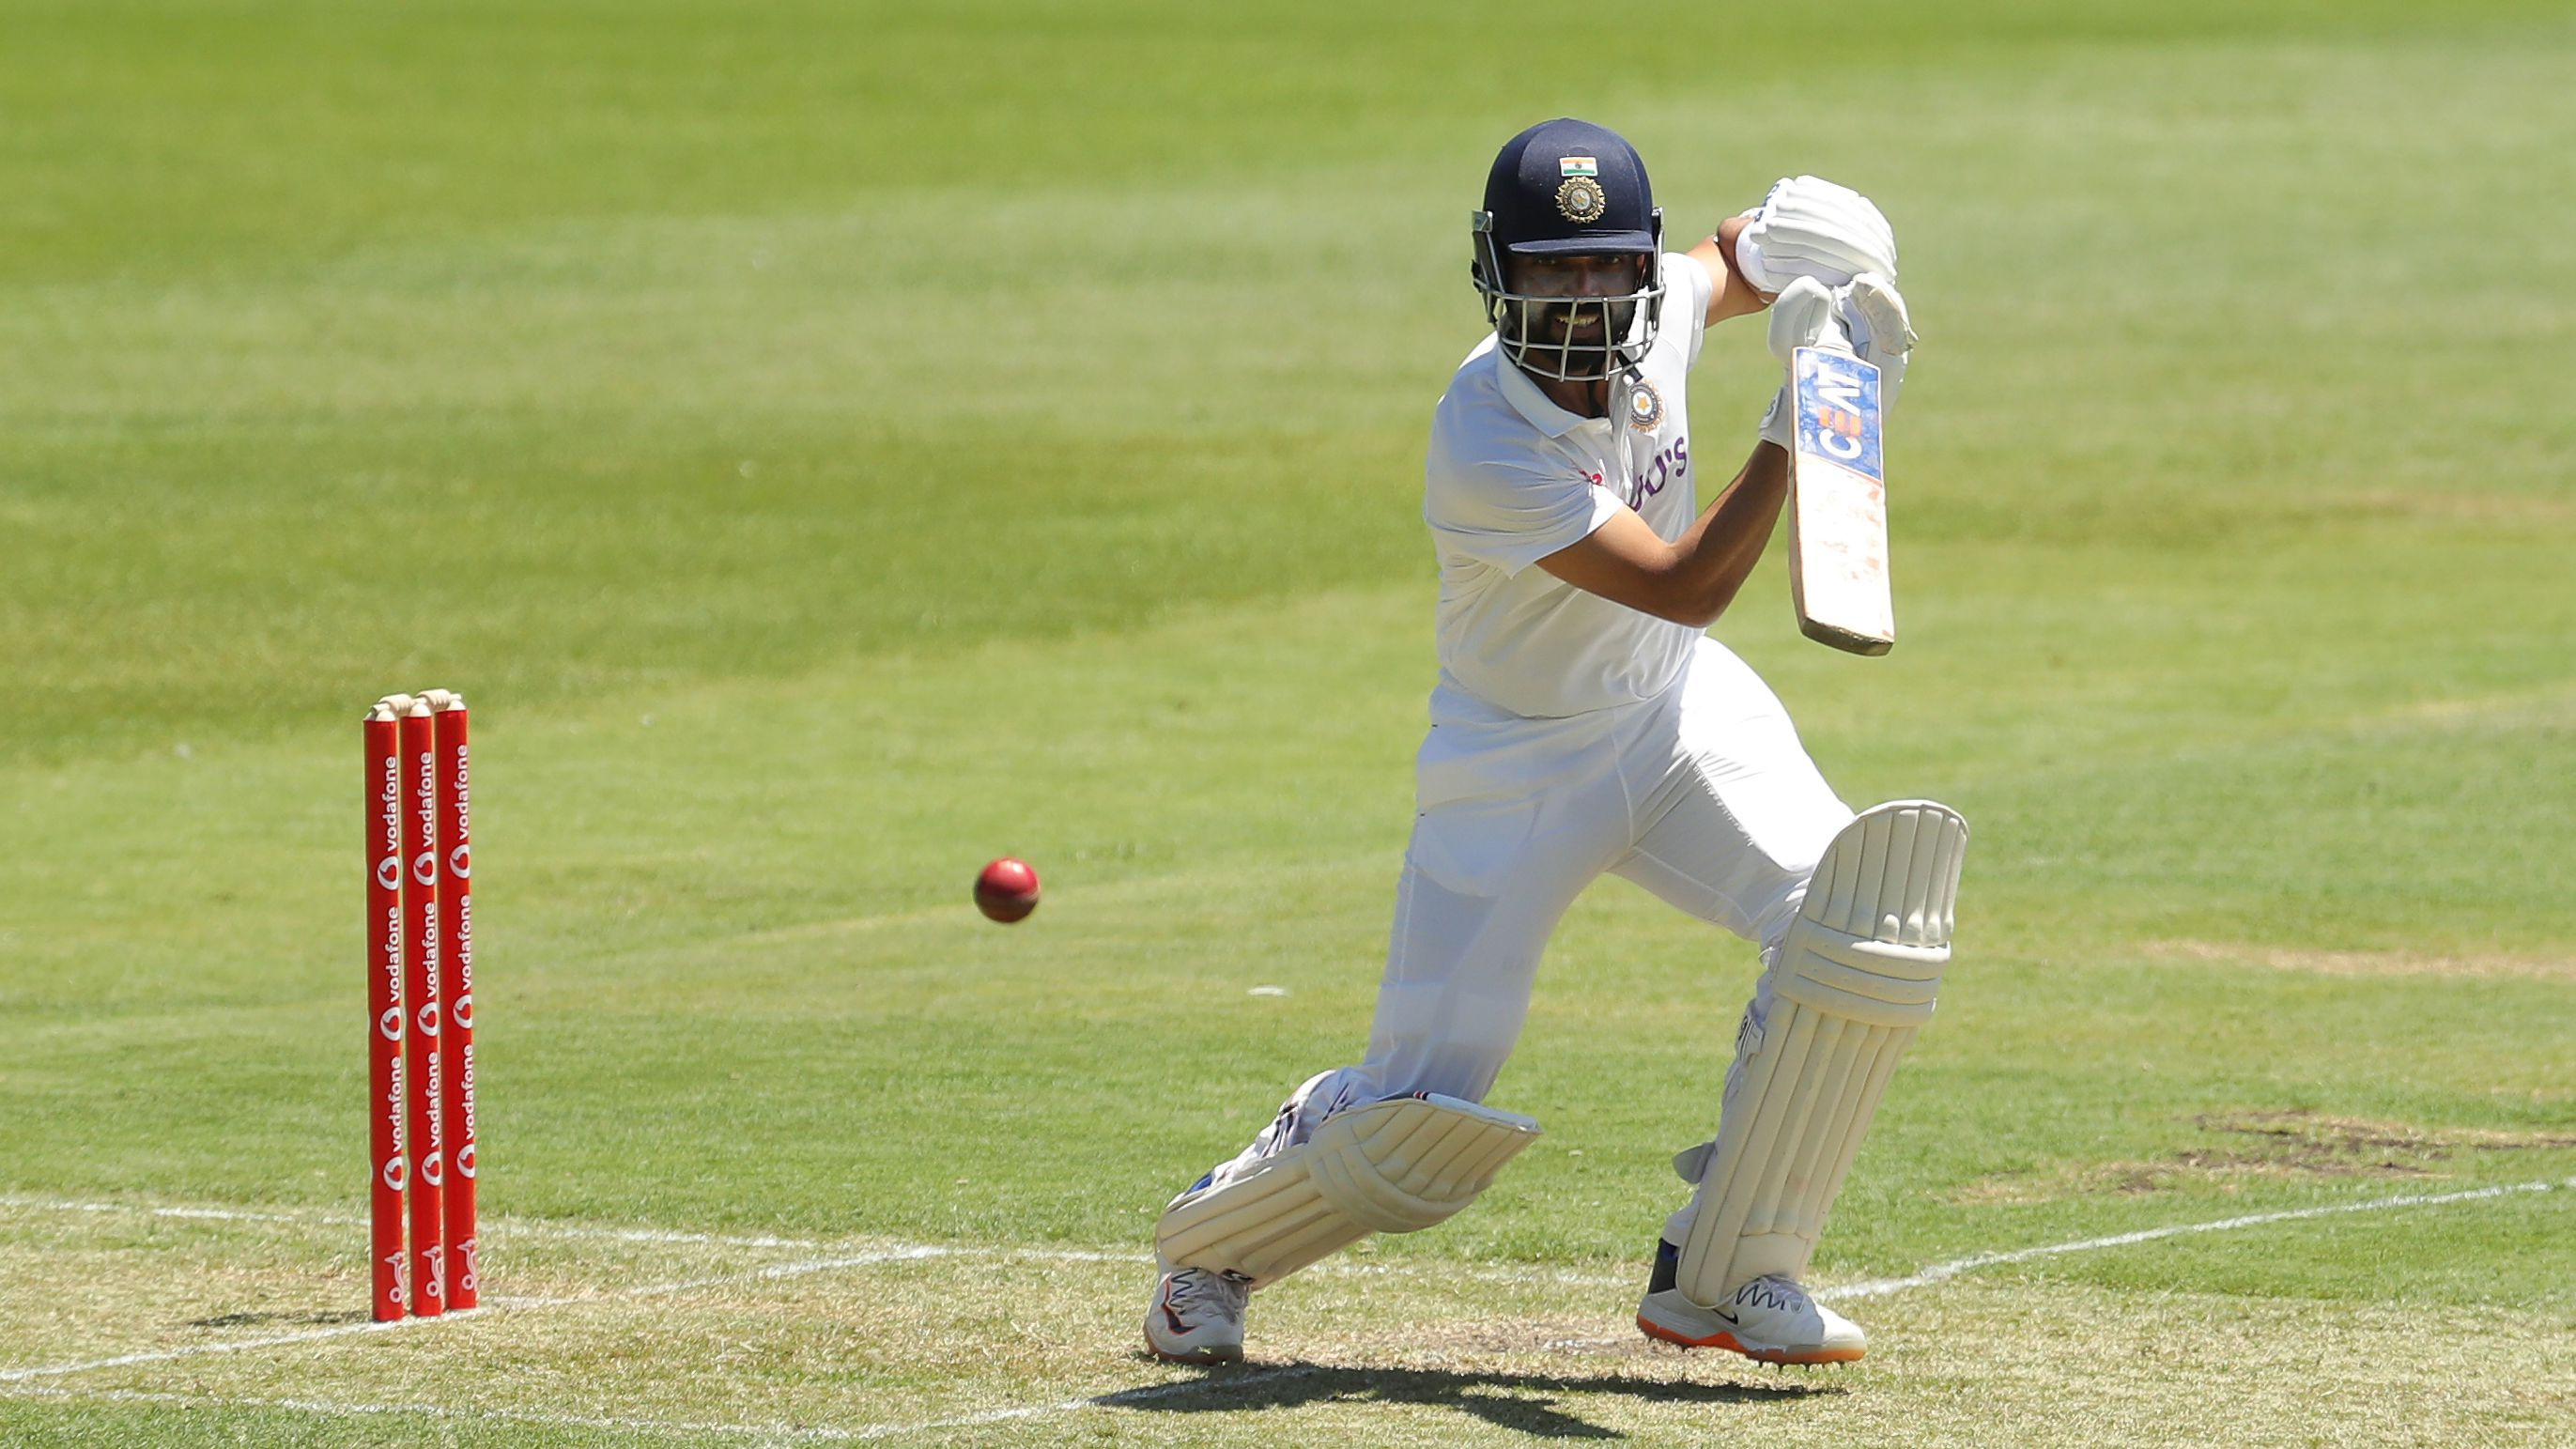 Ajinkya Rahane and James Pattinson star on day one of tour match between Indians and Australia A